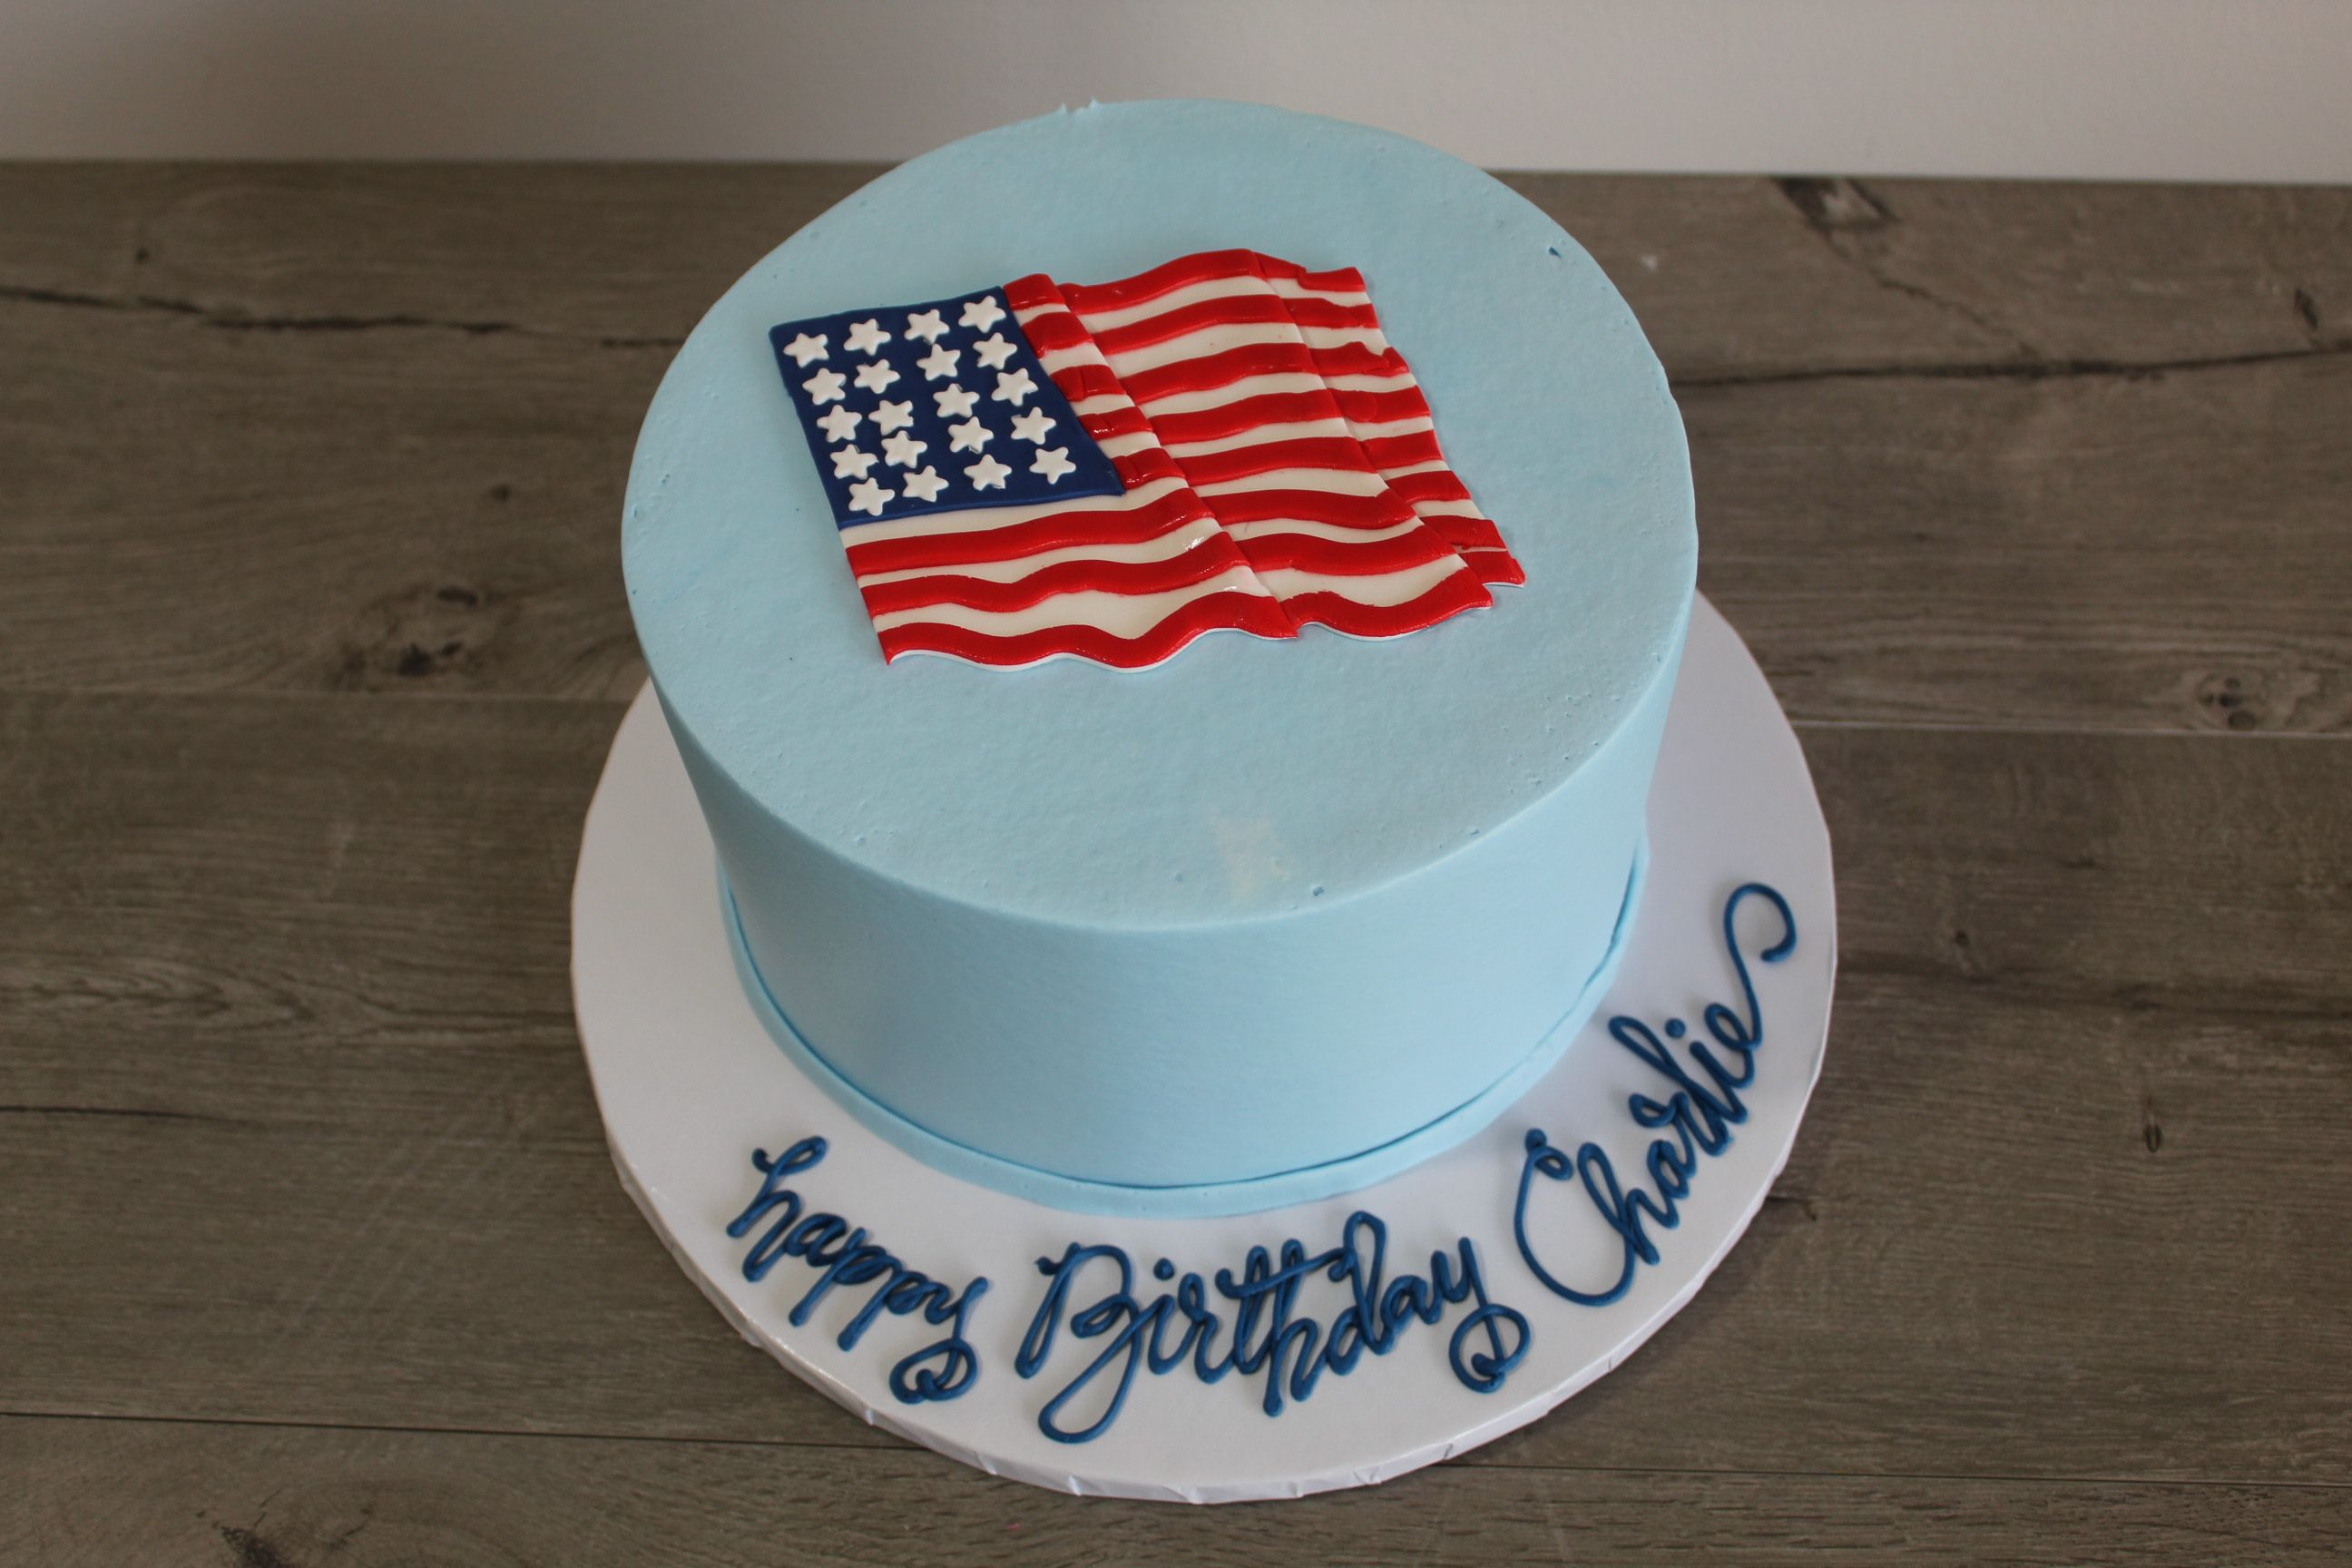 American Flag Cake With Images American Flag Cake Flag Cake Cake